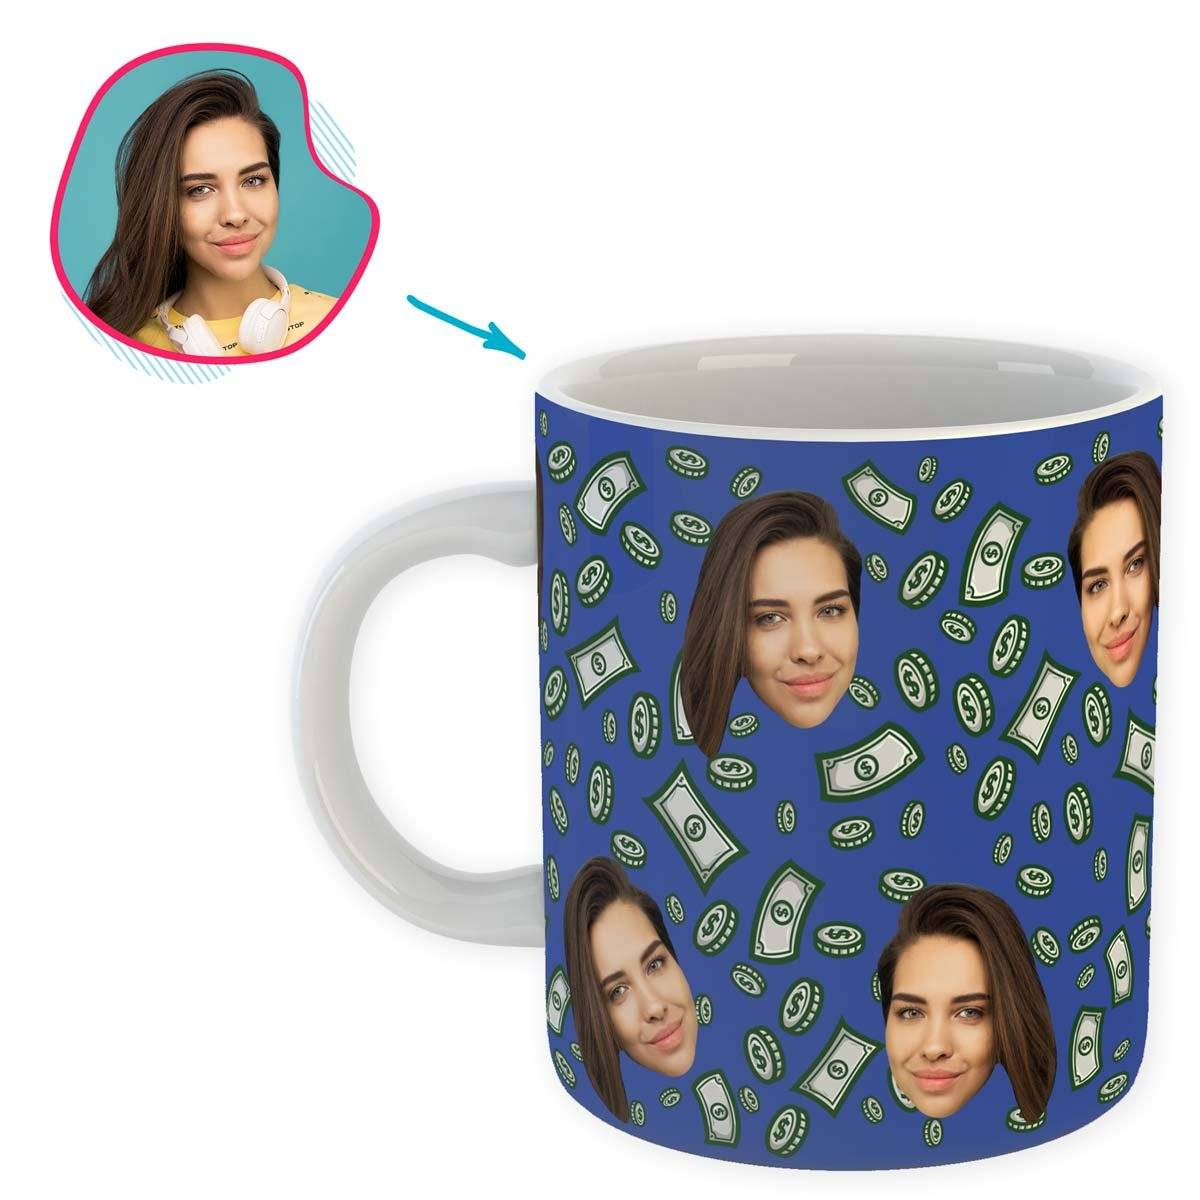 darkblue Money mug personalized with photo of face printed on it